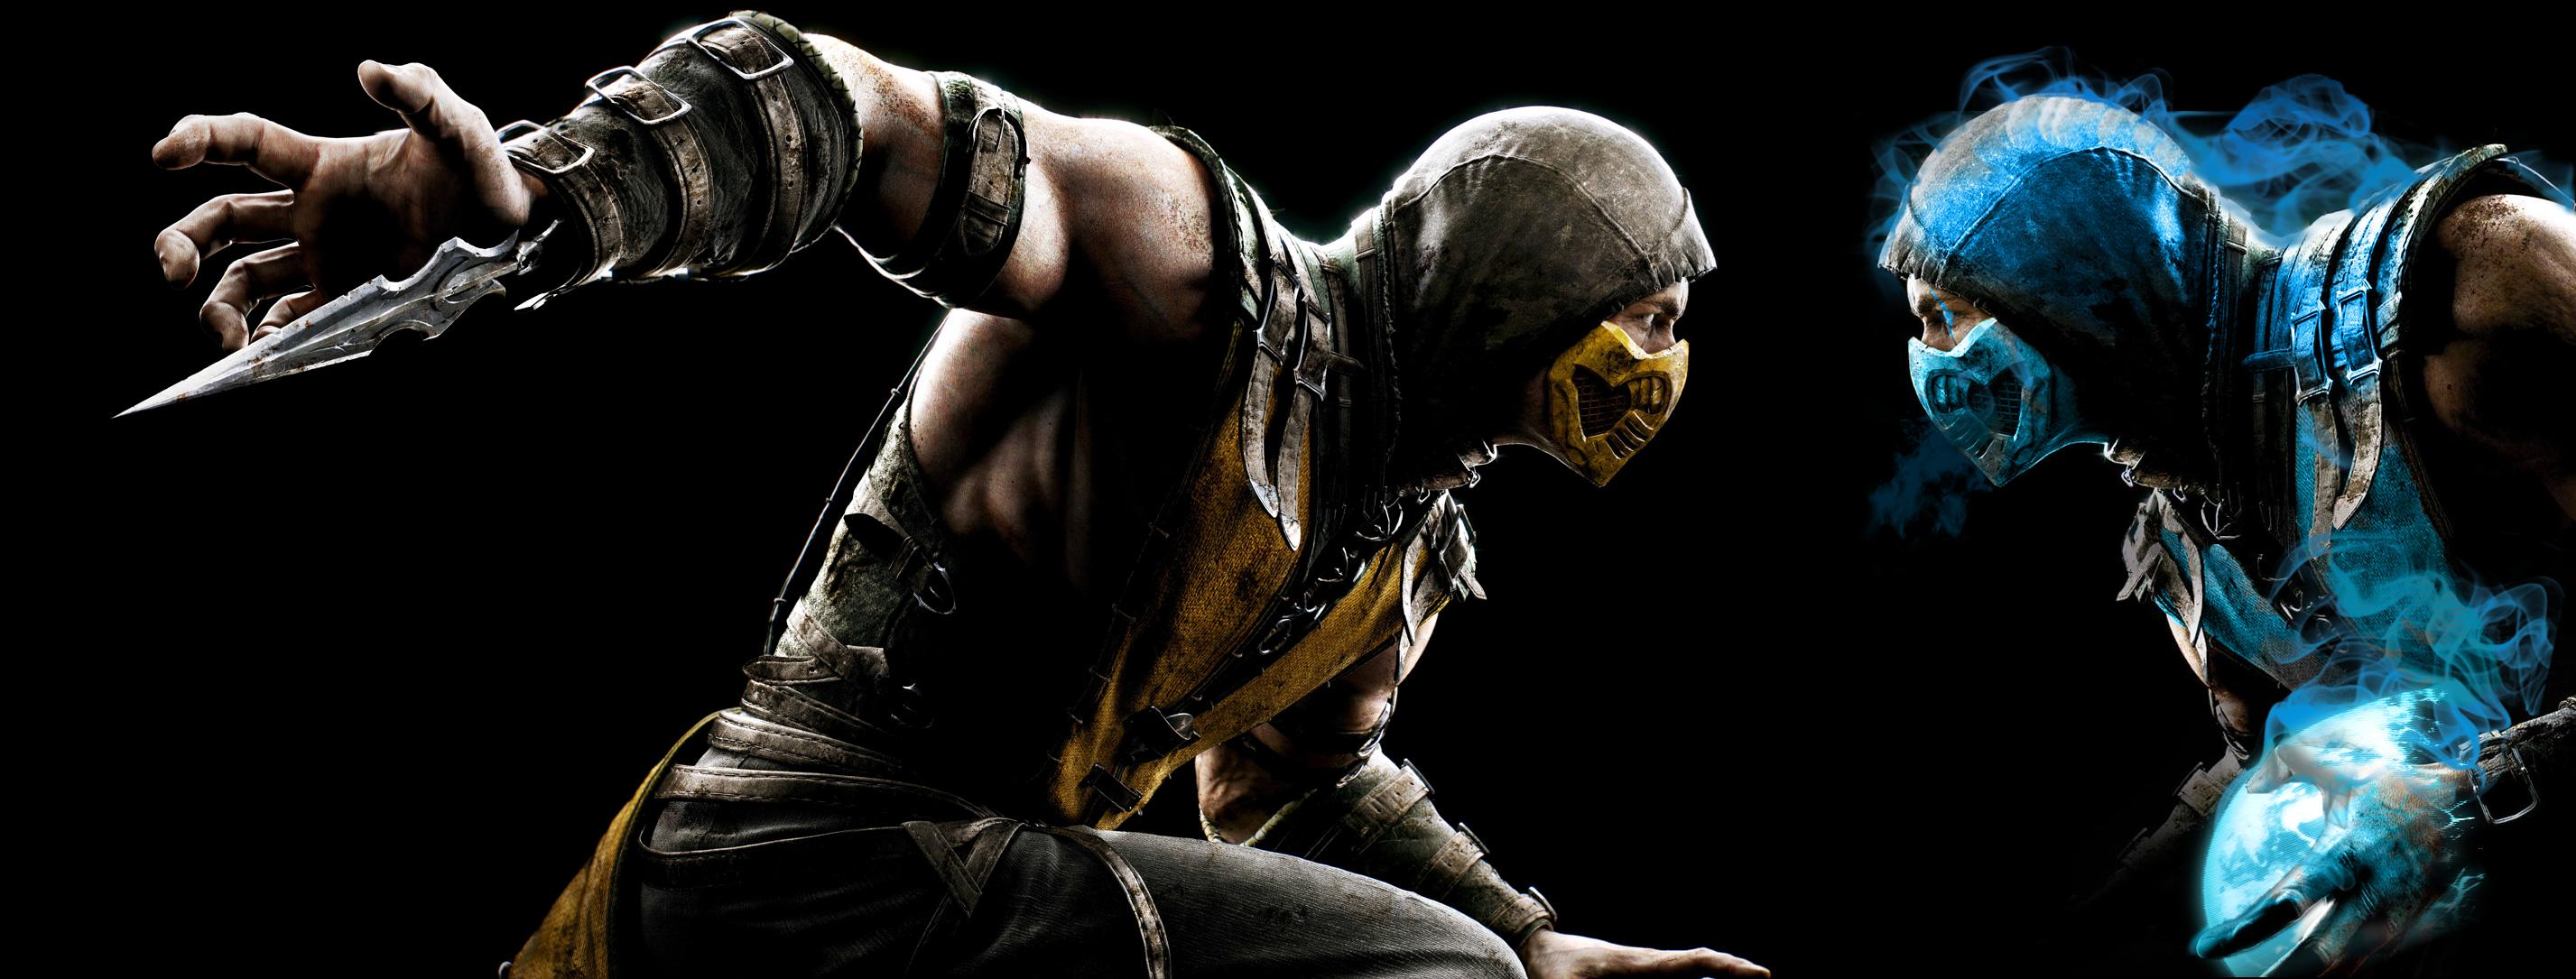 Sub Zero Vs Scorpion Wallpaper Sf Wallpaper